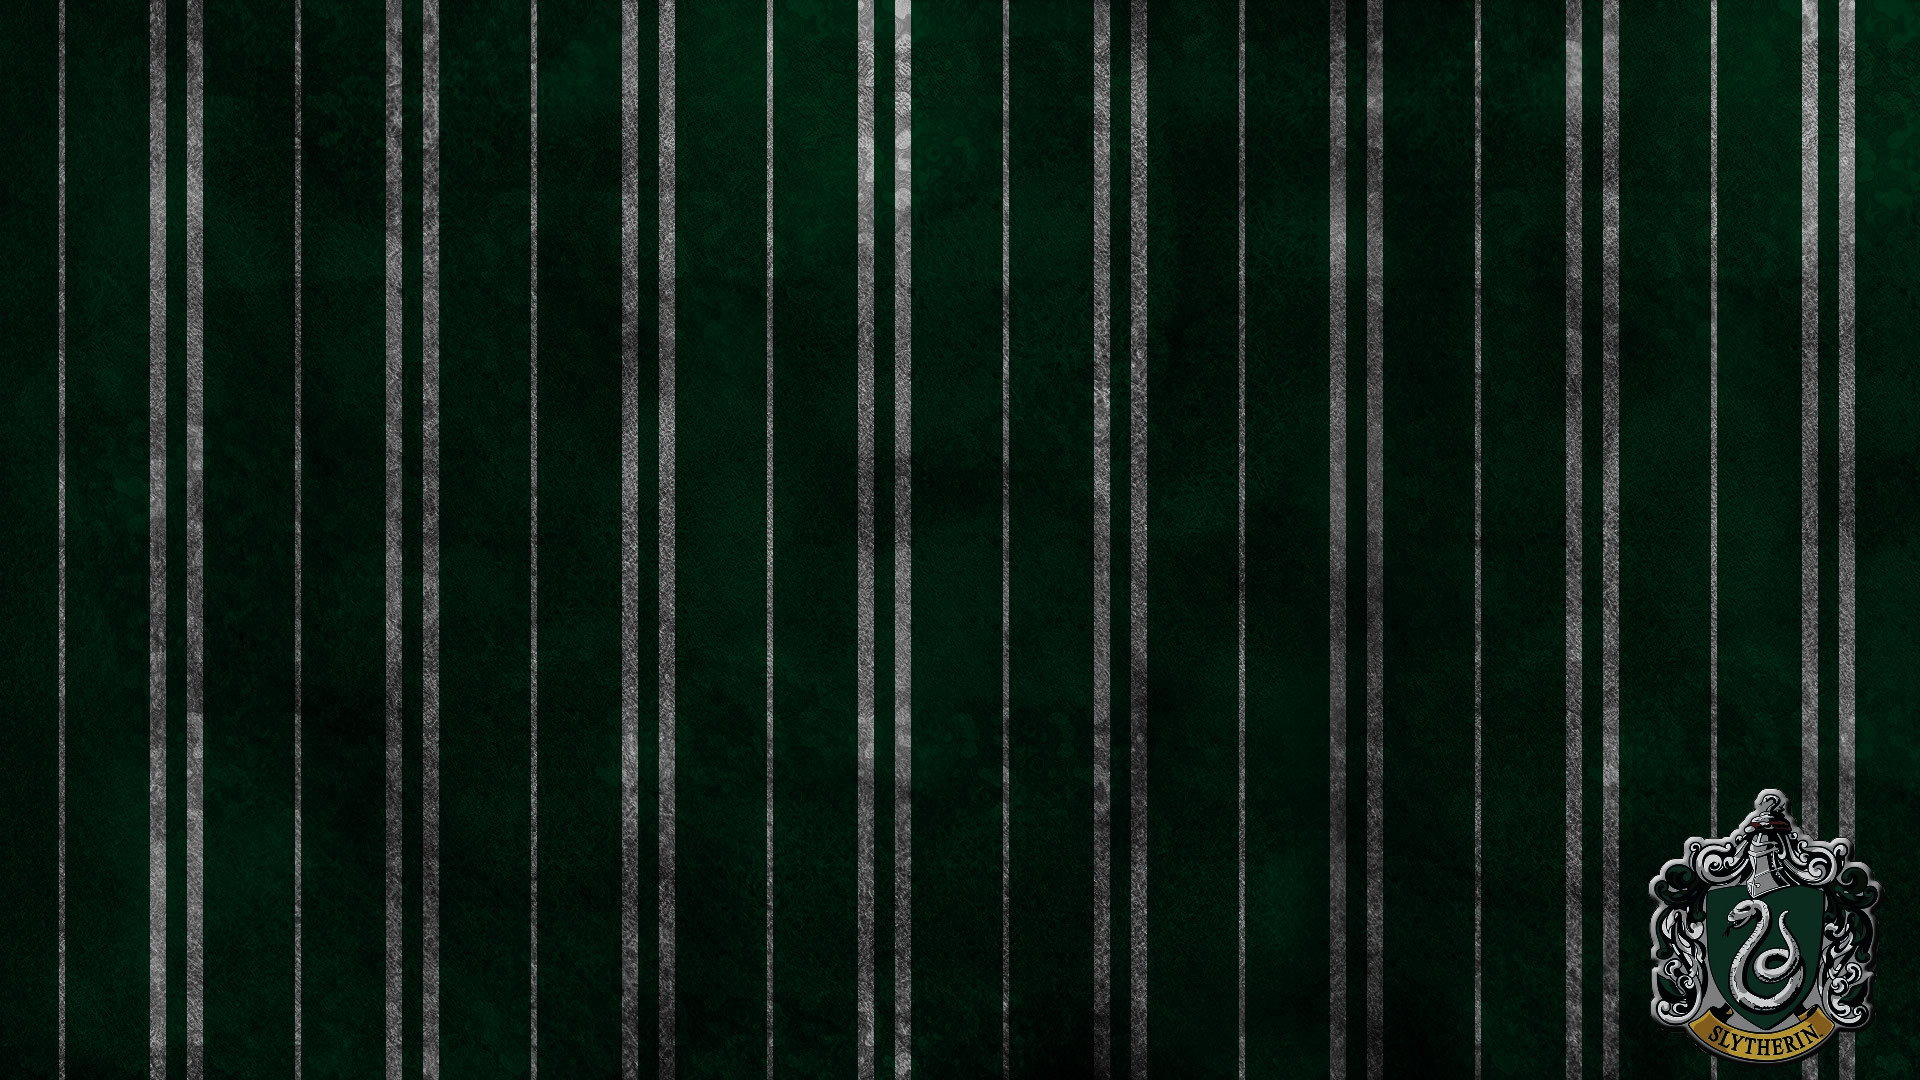 Hd Slytherin Wallpaper 78 Images